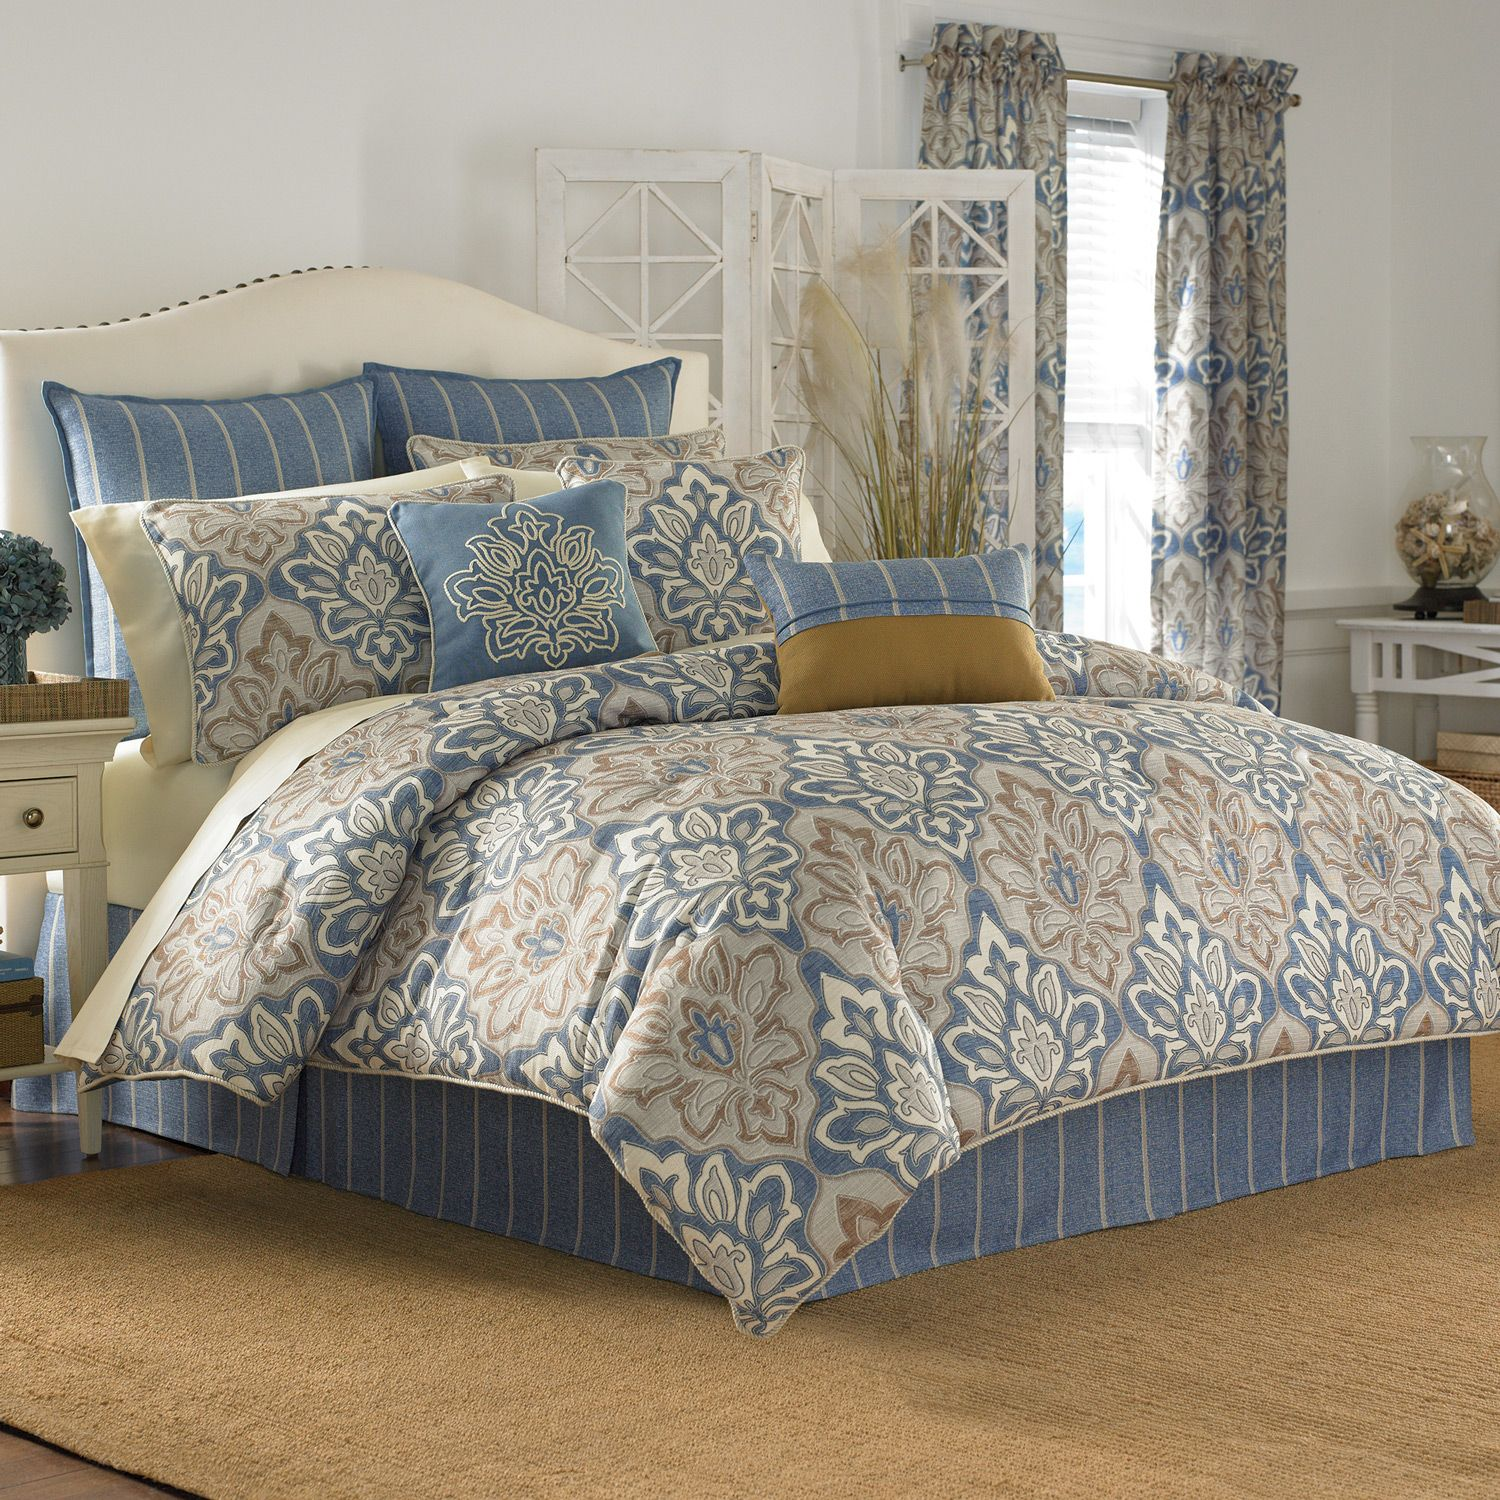 Bedroom forters Tar Queen Bedding Sets